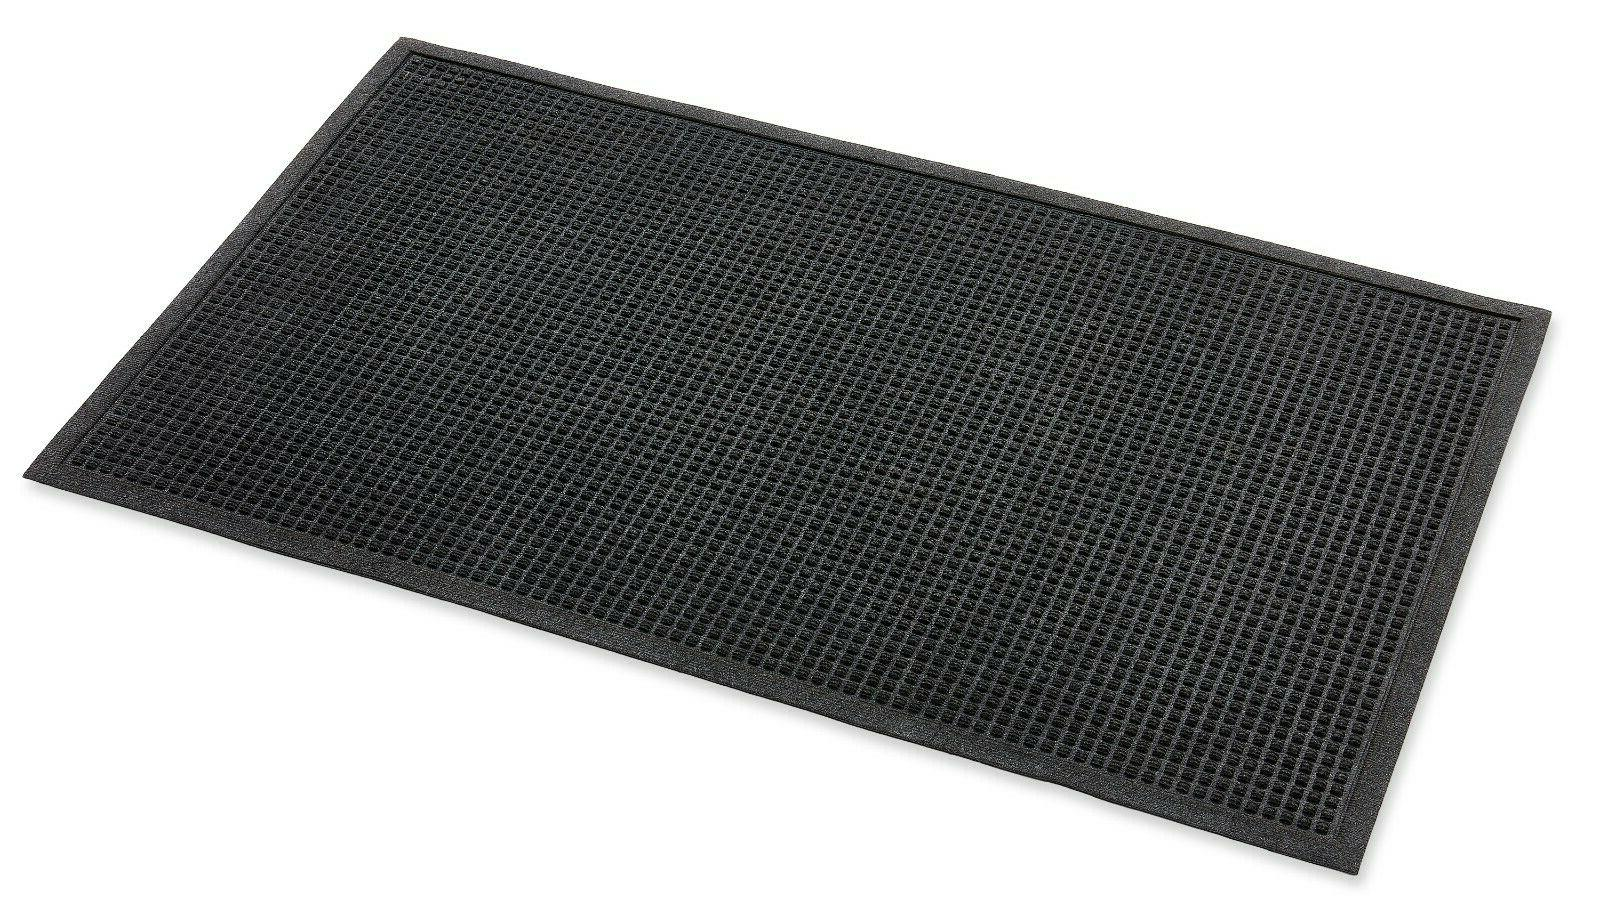 Kempf Mat, Multiple Sizes